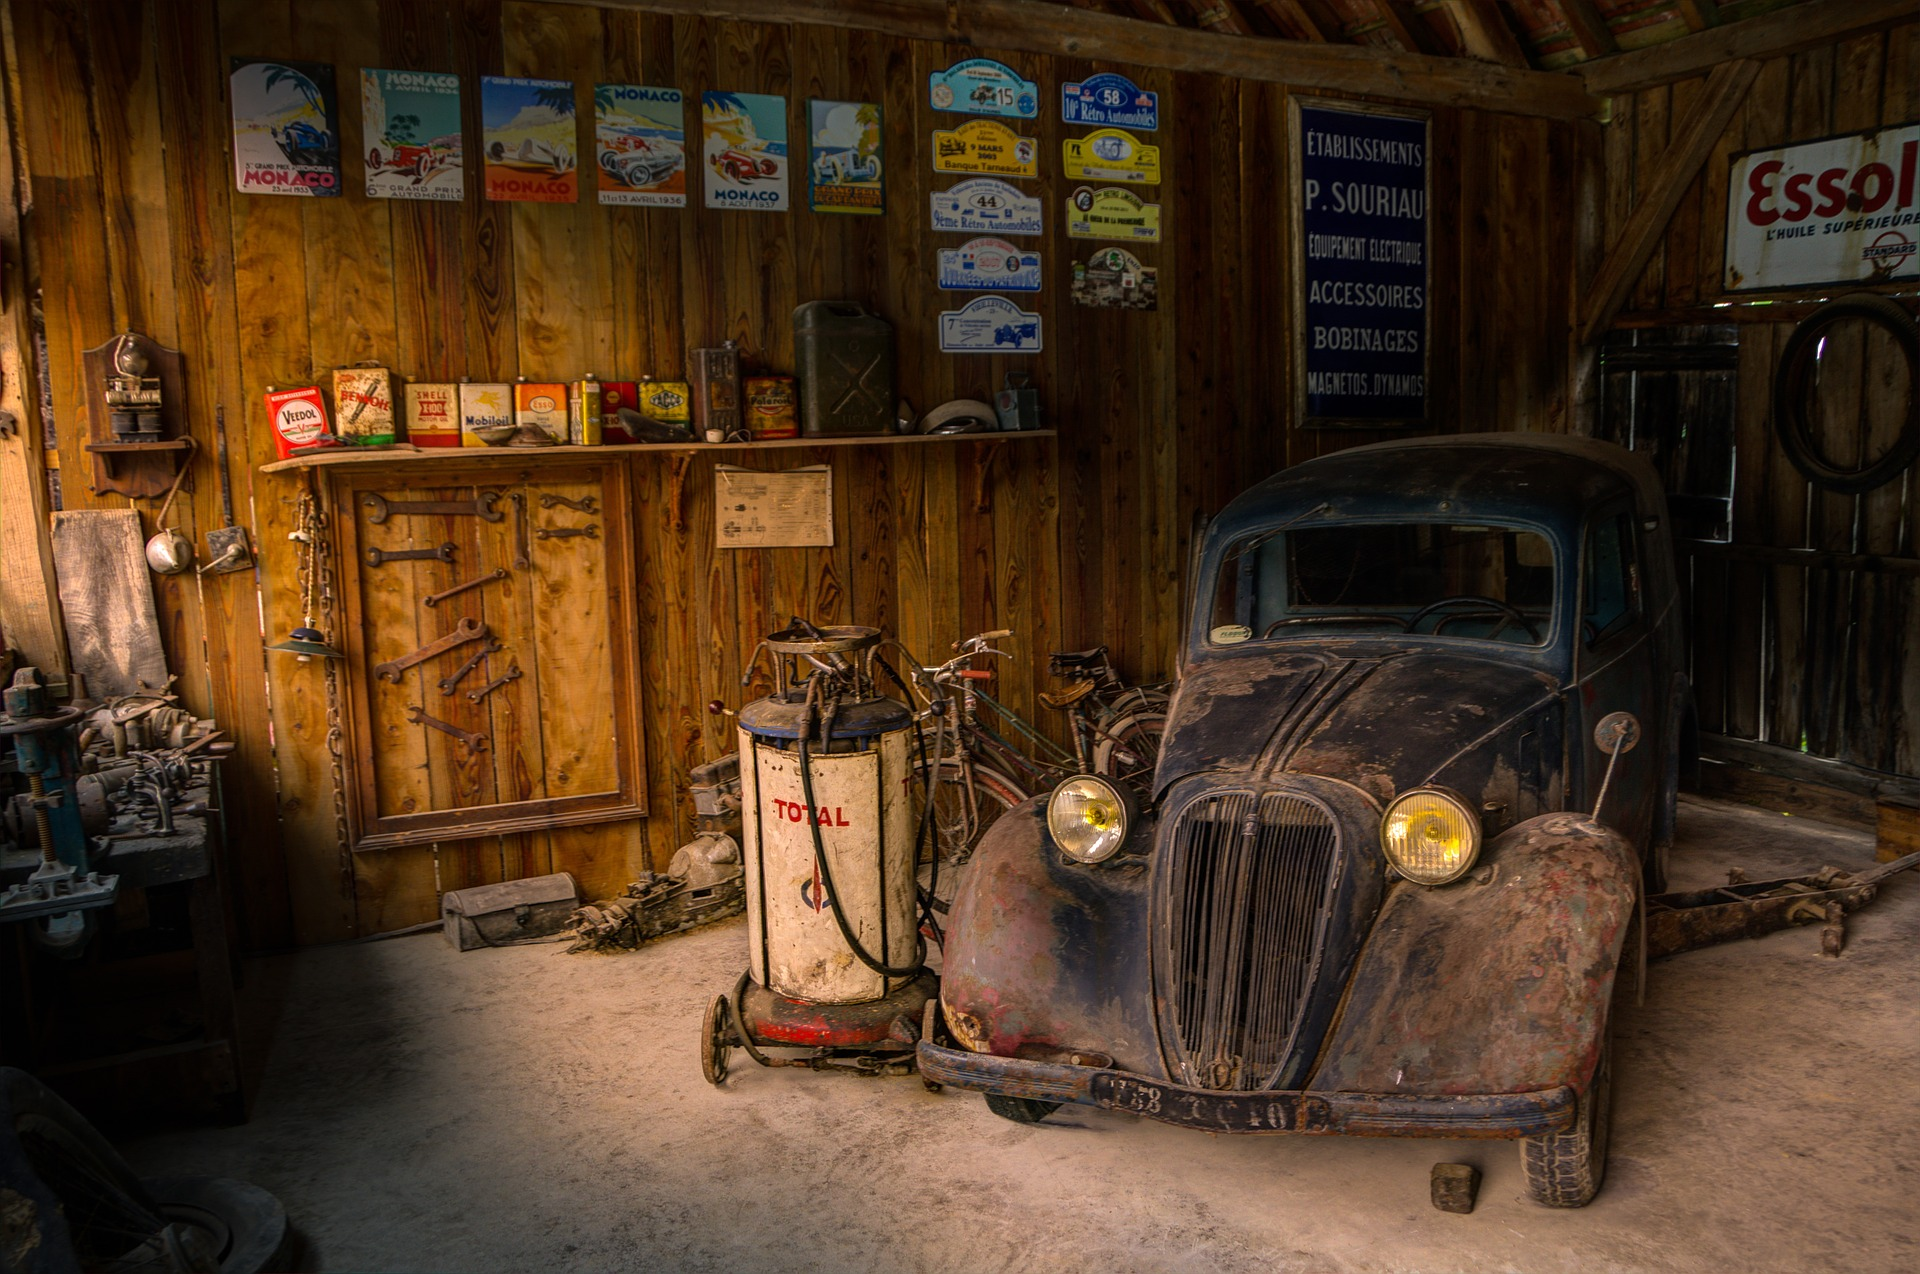 Free photo: Old Garage and Vintage Car - Grungy, Old, Grunge - Free ...